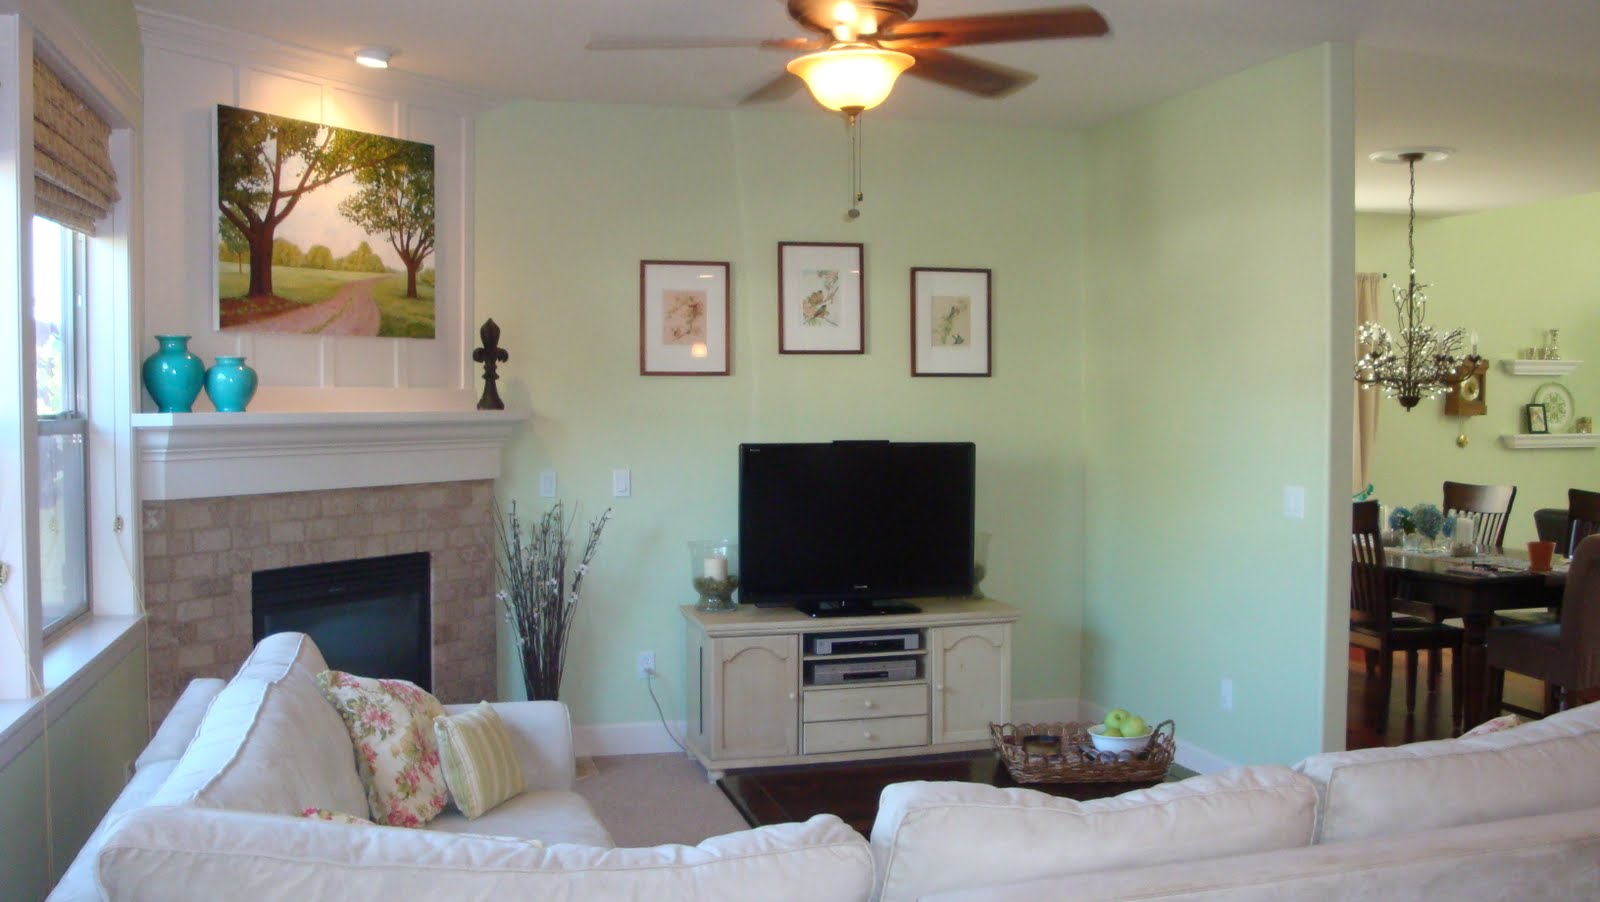 Pink Postcard*: family room before and after (well, almost)